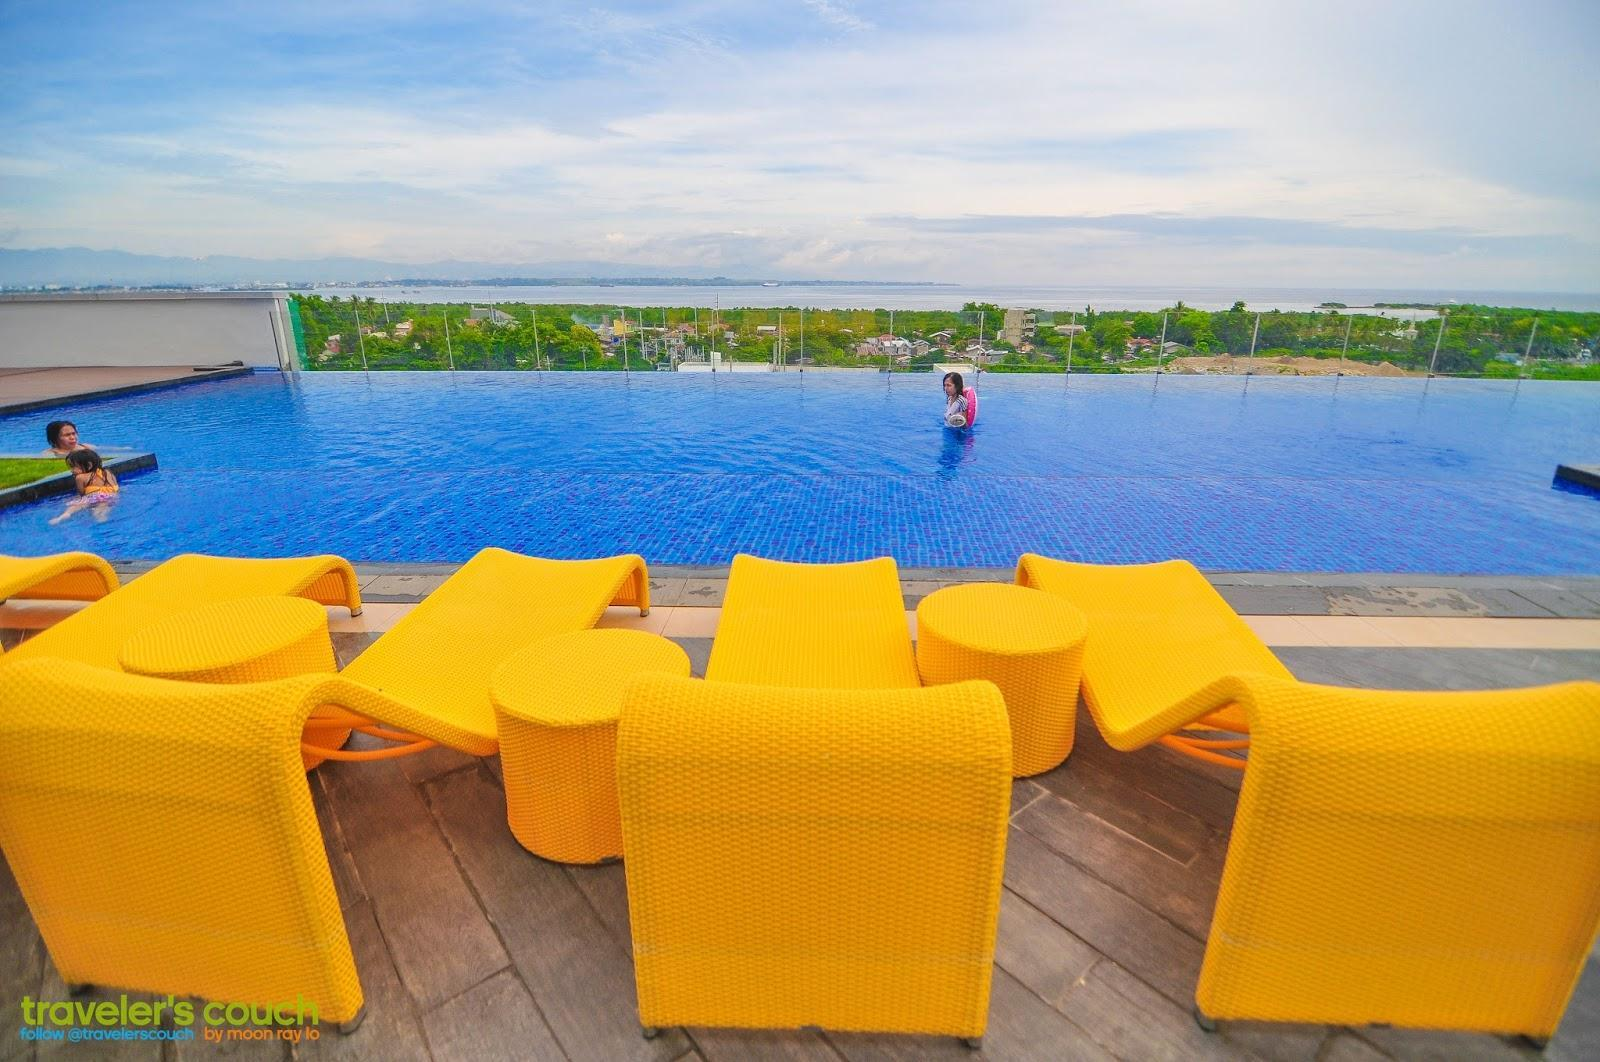 Mactan Newtown Beach and Condo Staycation - Hotels Information/Map/Reviews/Reservation